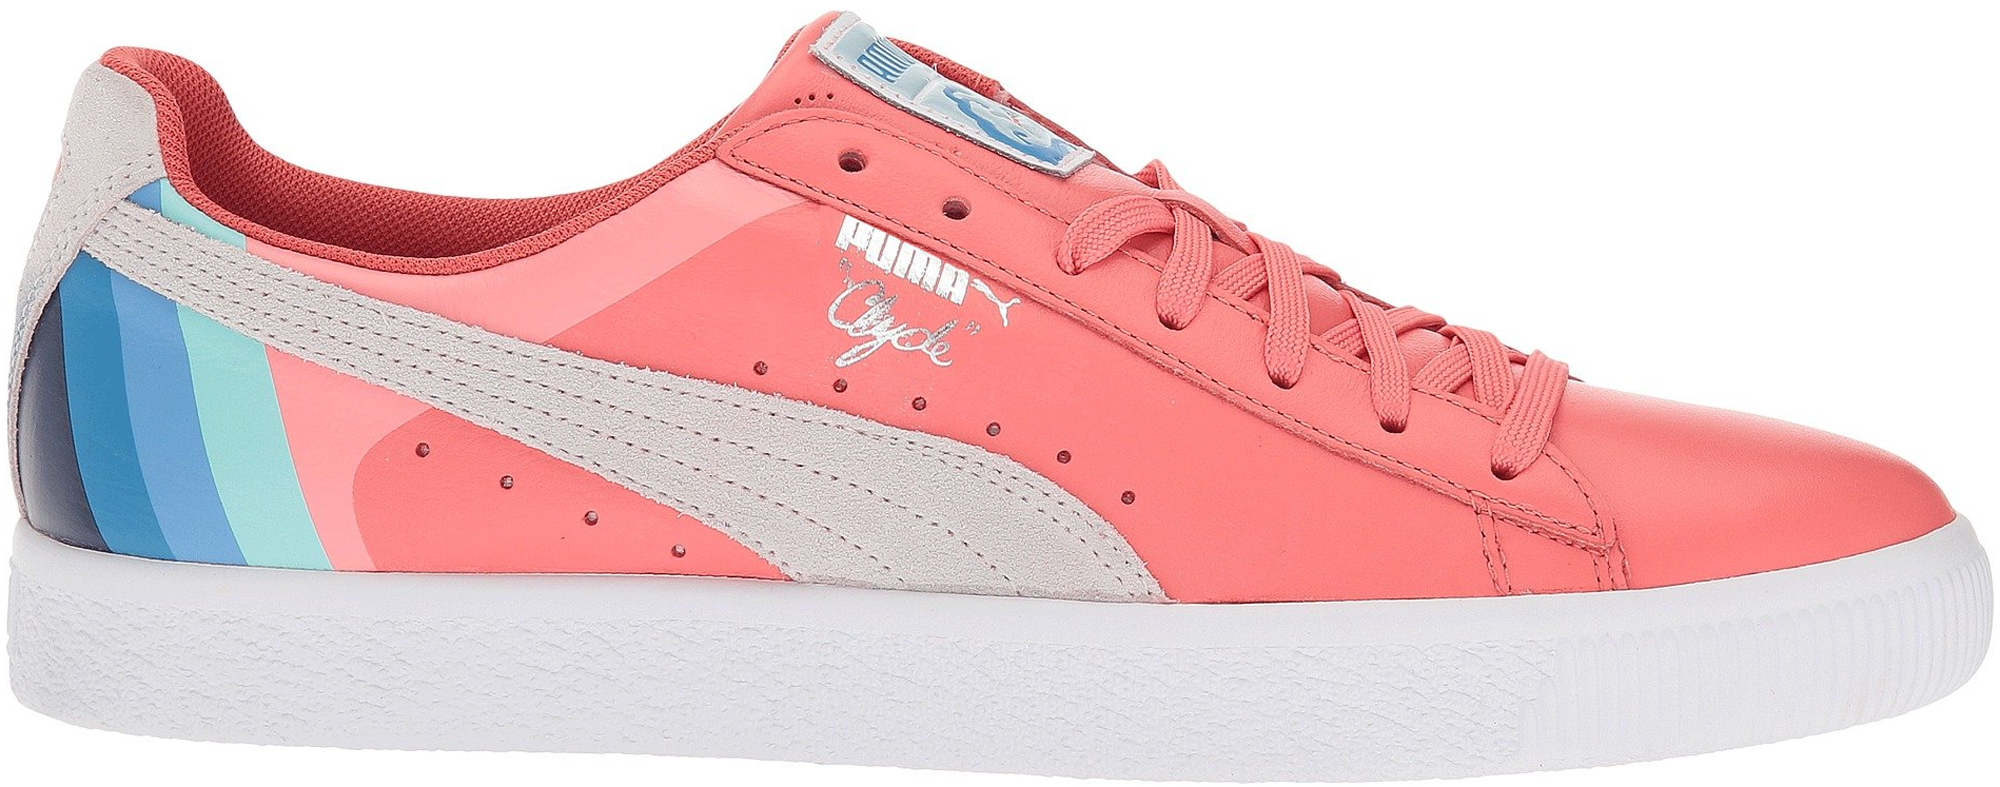 Pink Dolphin x Puma Clyde Porcelain Rose StockX News